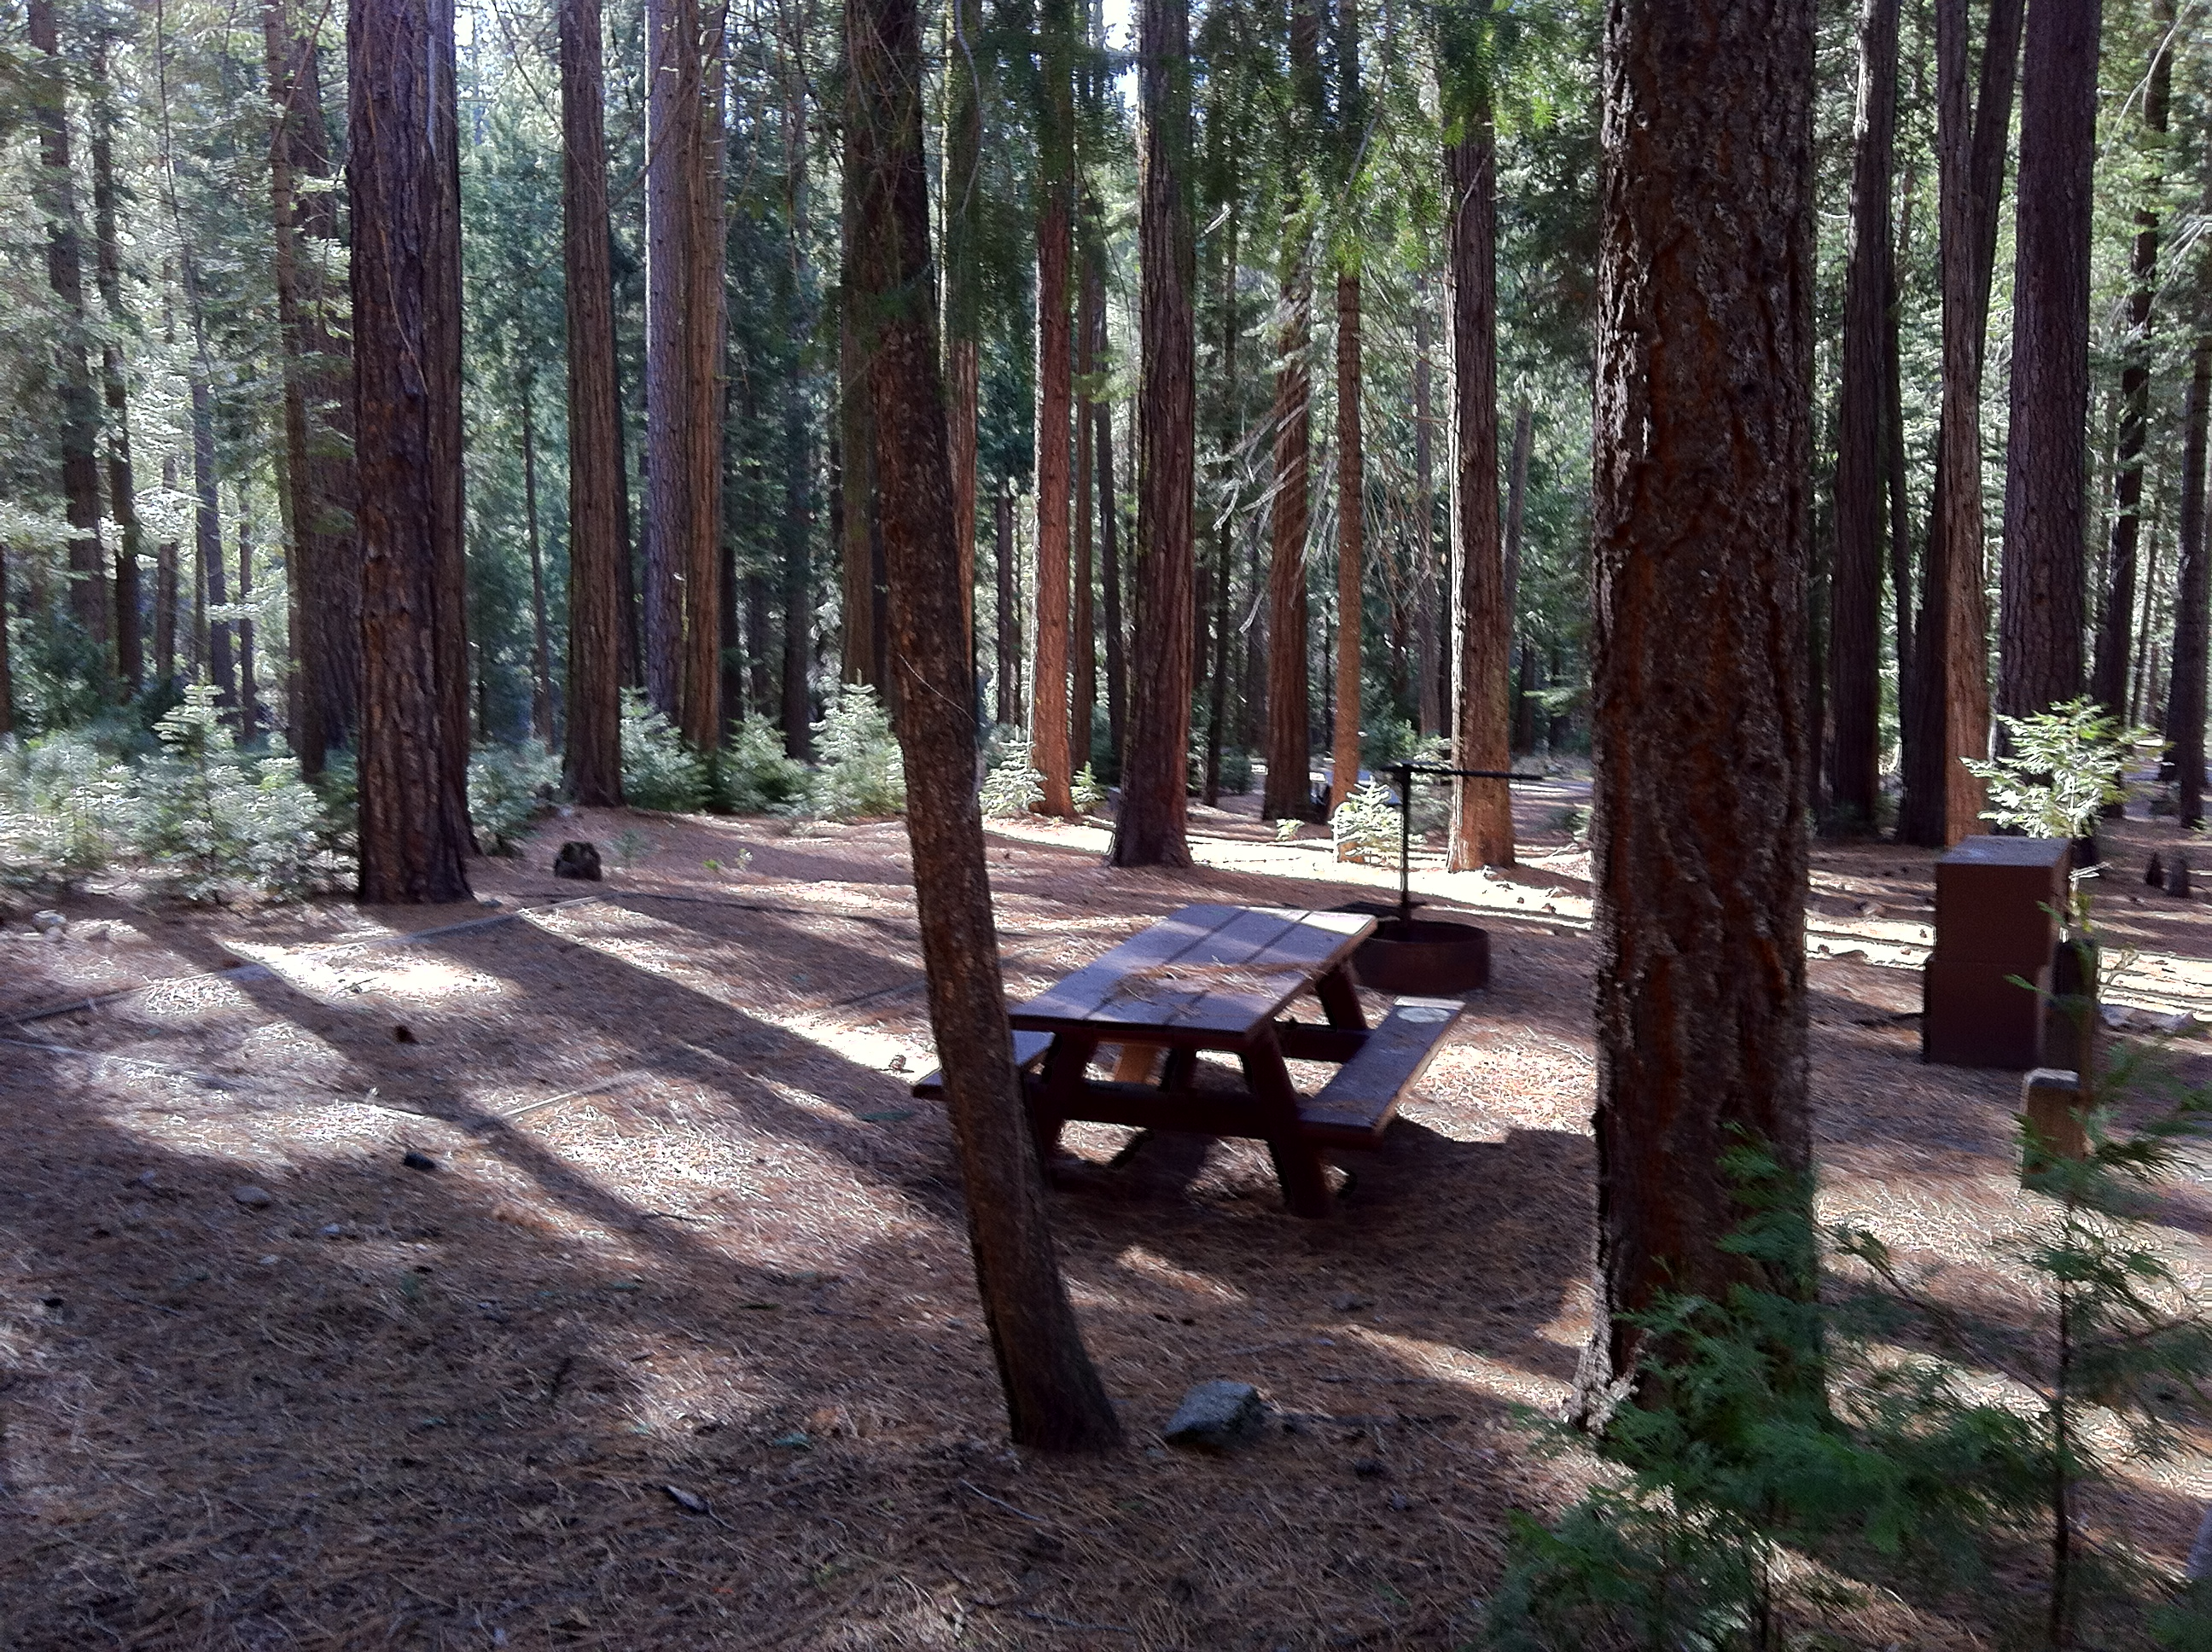 Large Trees in Campgrounds